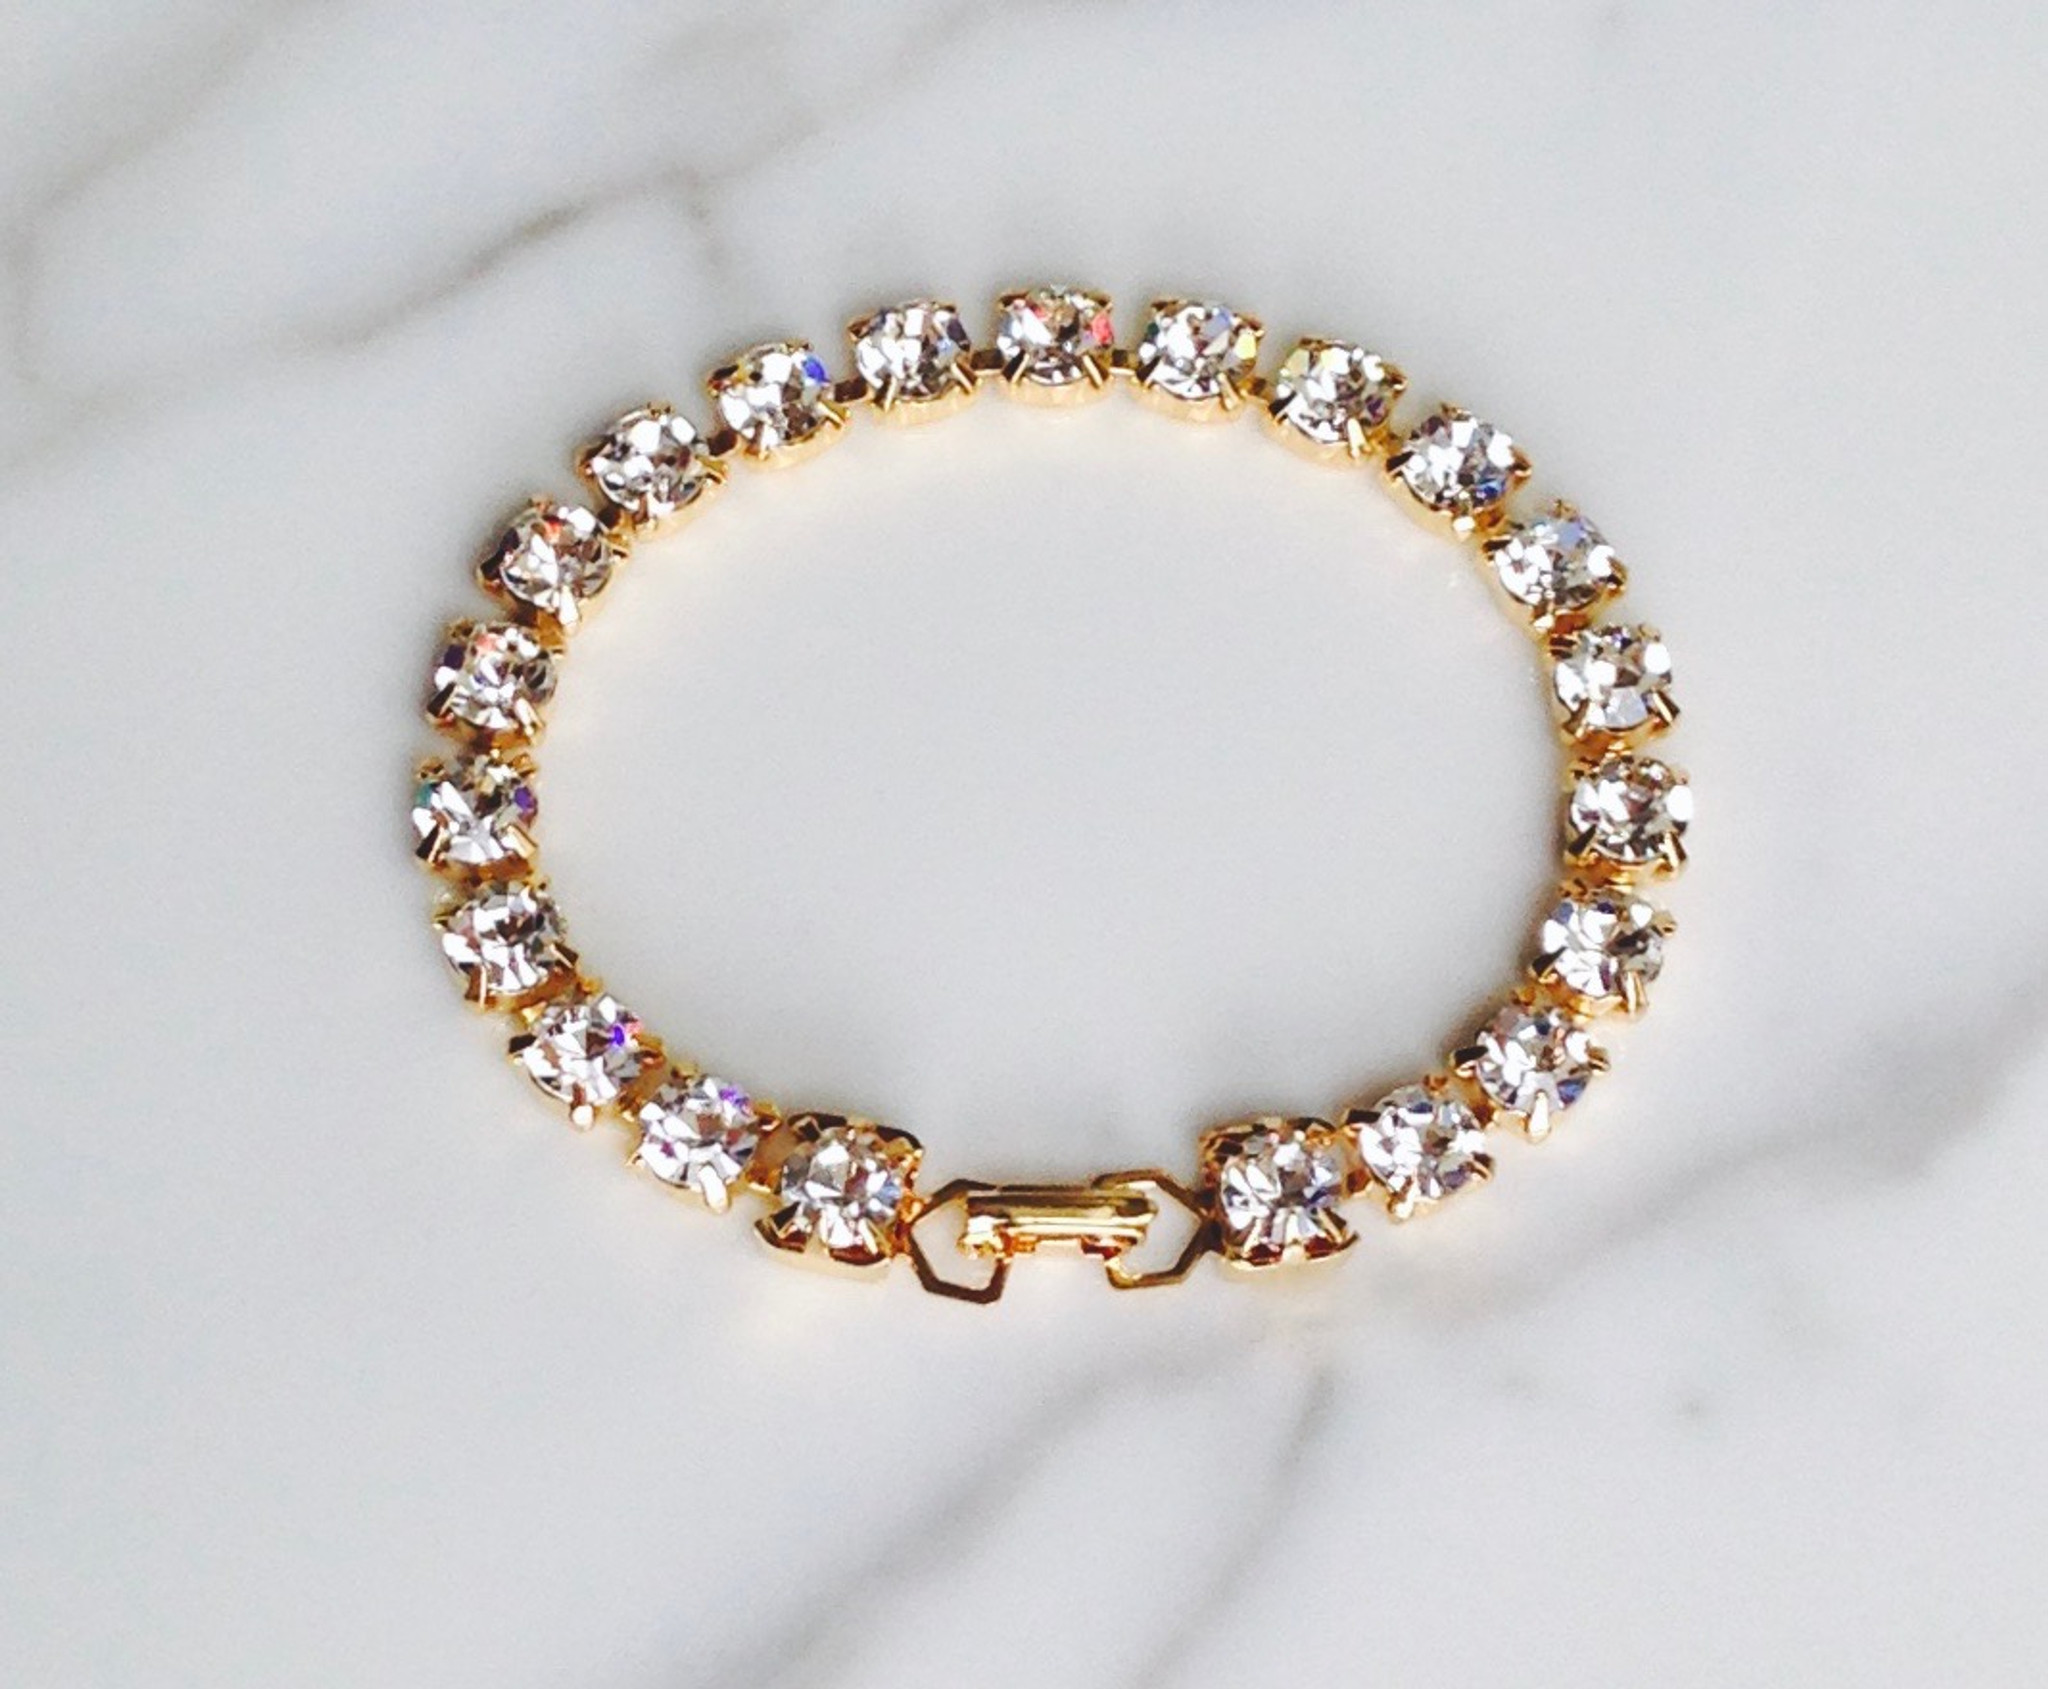 Tennis Bracelet made with Swarovski Crystal Elements in Gold Overlay 69d8f9743